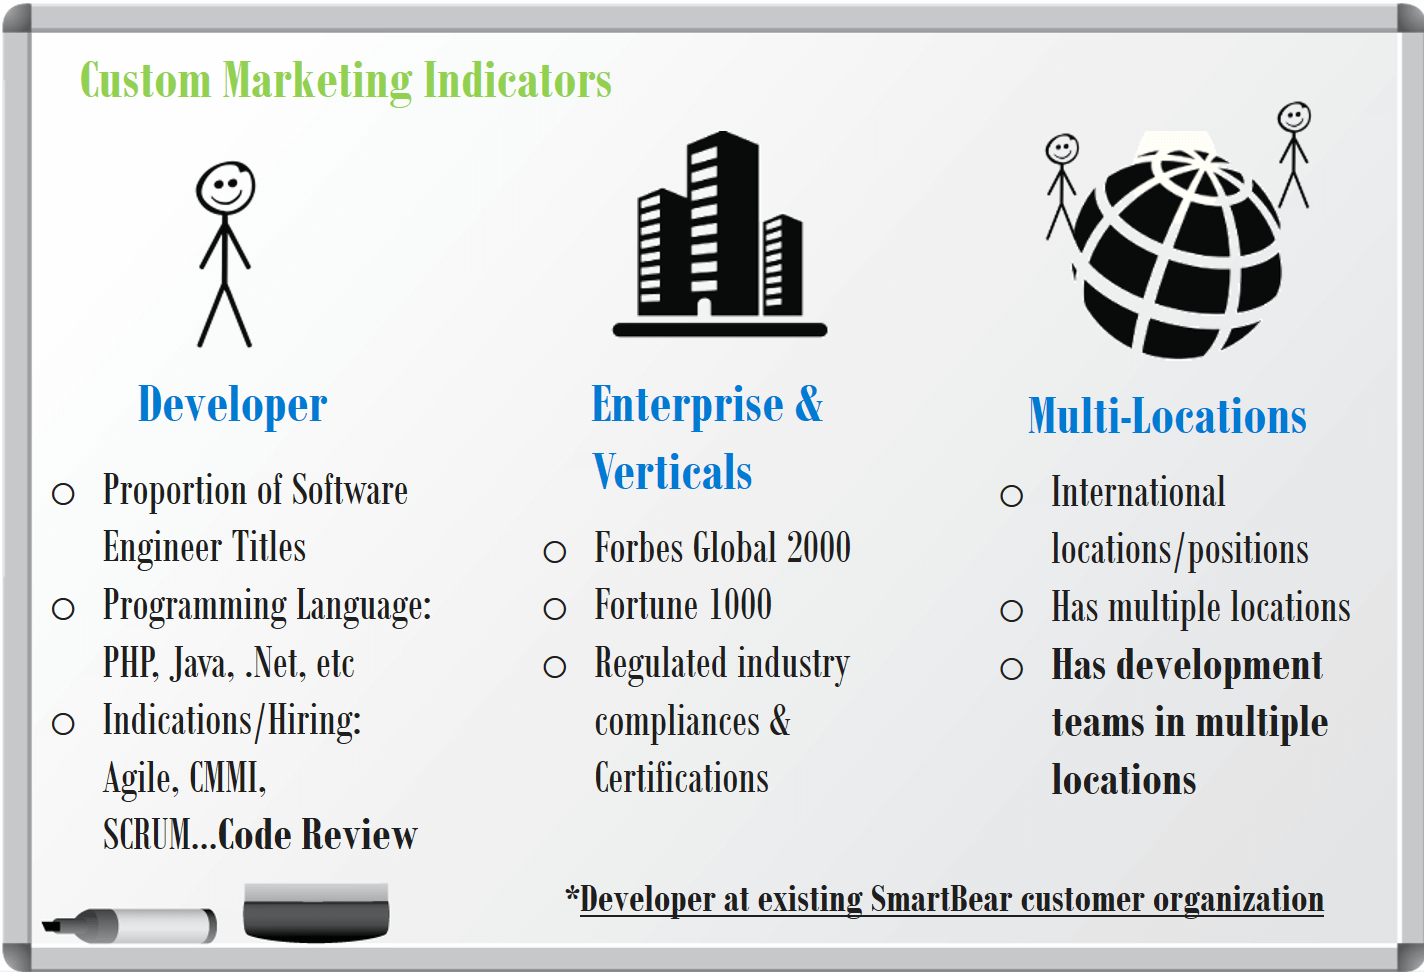 Custom-Marketing-Indicators-Example-Predictive-Analytics-Mintigo